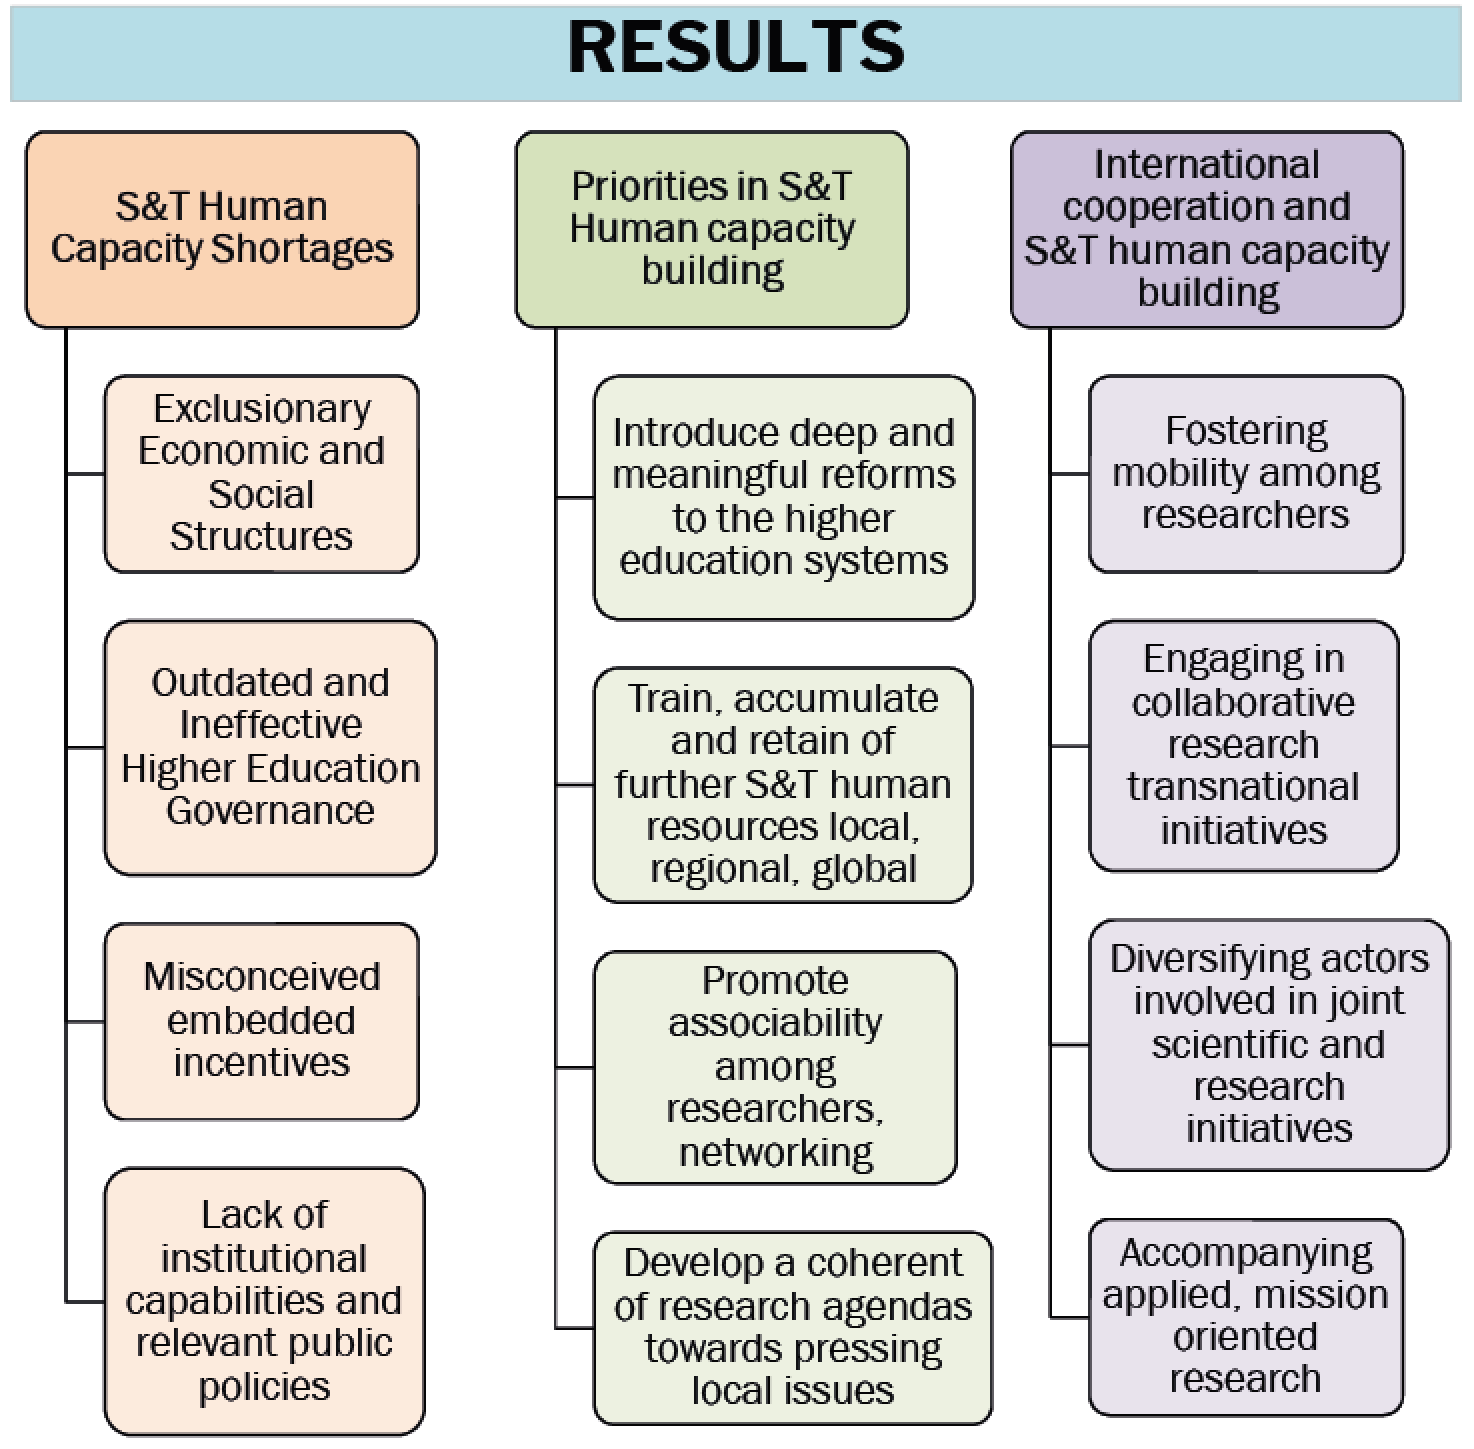 The identified S&T Human Capacity Shortages include: exclusionary economic and social structures; outdated, ineffective higher education governance; misconceived embedded incentives; and a lack of institutional capabilities and relevant public policies. Identified priorities in S&T human capacity building include: introducing deep and meaningful reforms to the higher education systems; training, accumulating and retaining further S&T human resources at the local, regional and global levels; promoting associability among researchers and networking; and developing coherent research agendas towards pressing local issues. Finally, the suggestions for international cooperation and S&T human capacity building include: fostering mobility among researchers; engaging in collaborative, transnational researcher initiatives; diversifying actors involved in joint scientific and research initiatives; and accompanying applied, mission-oriented research.